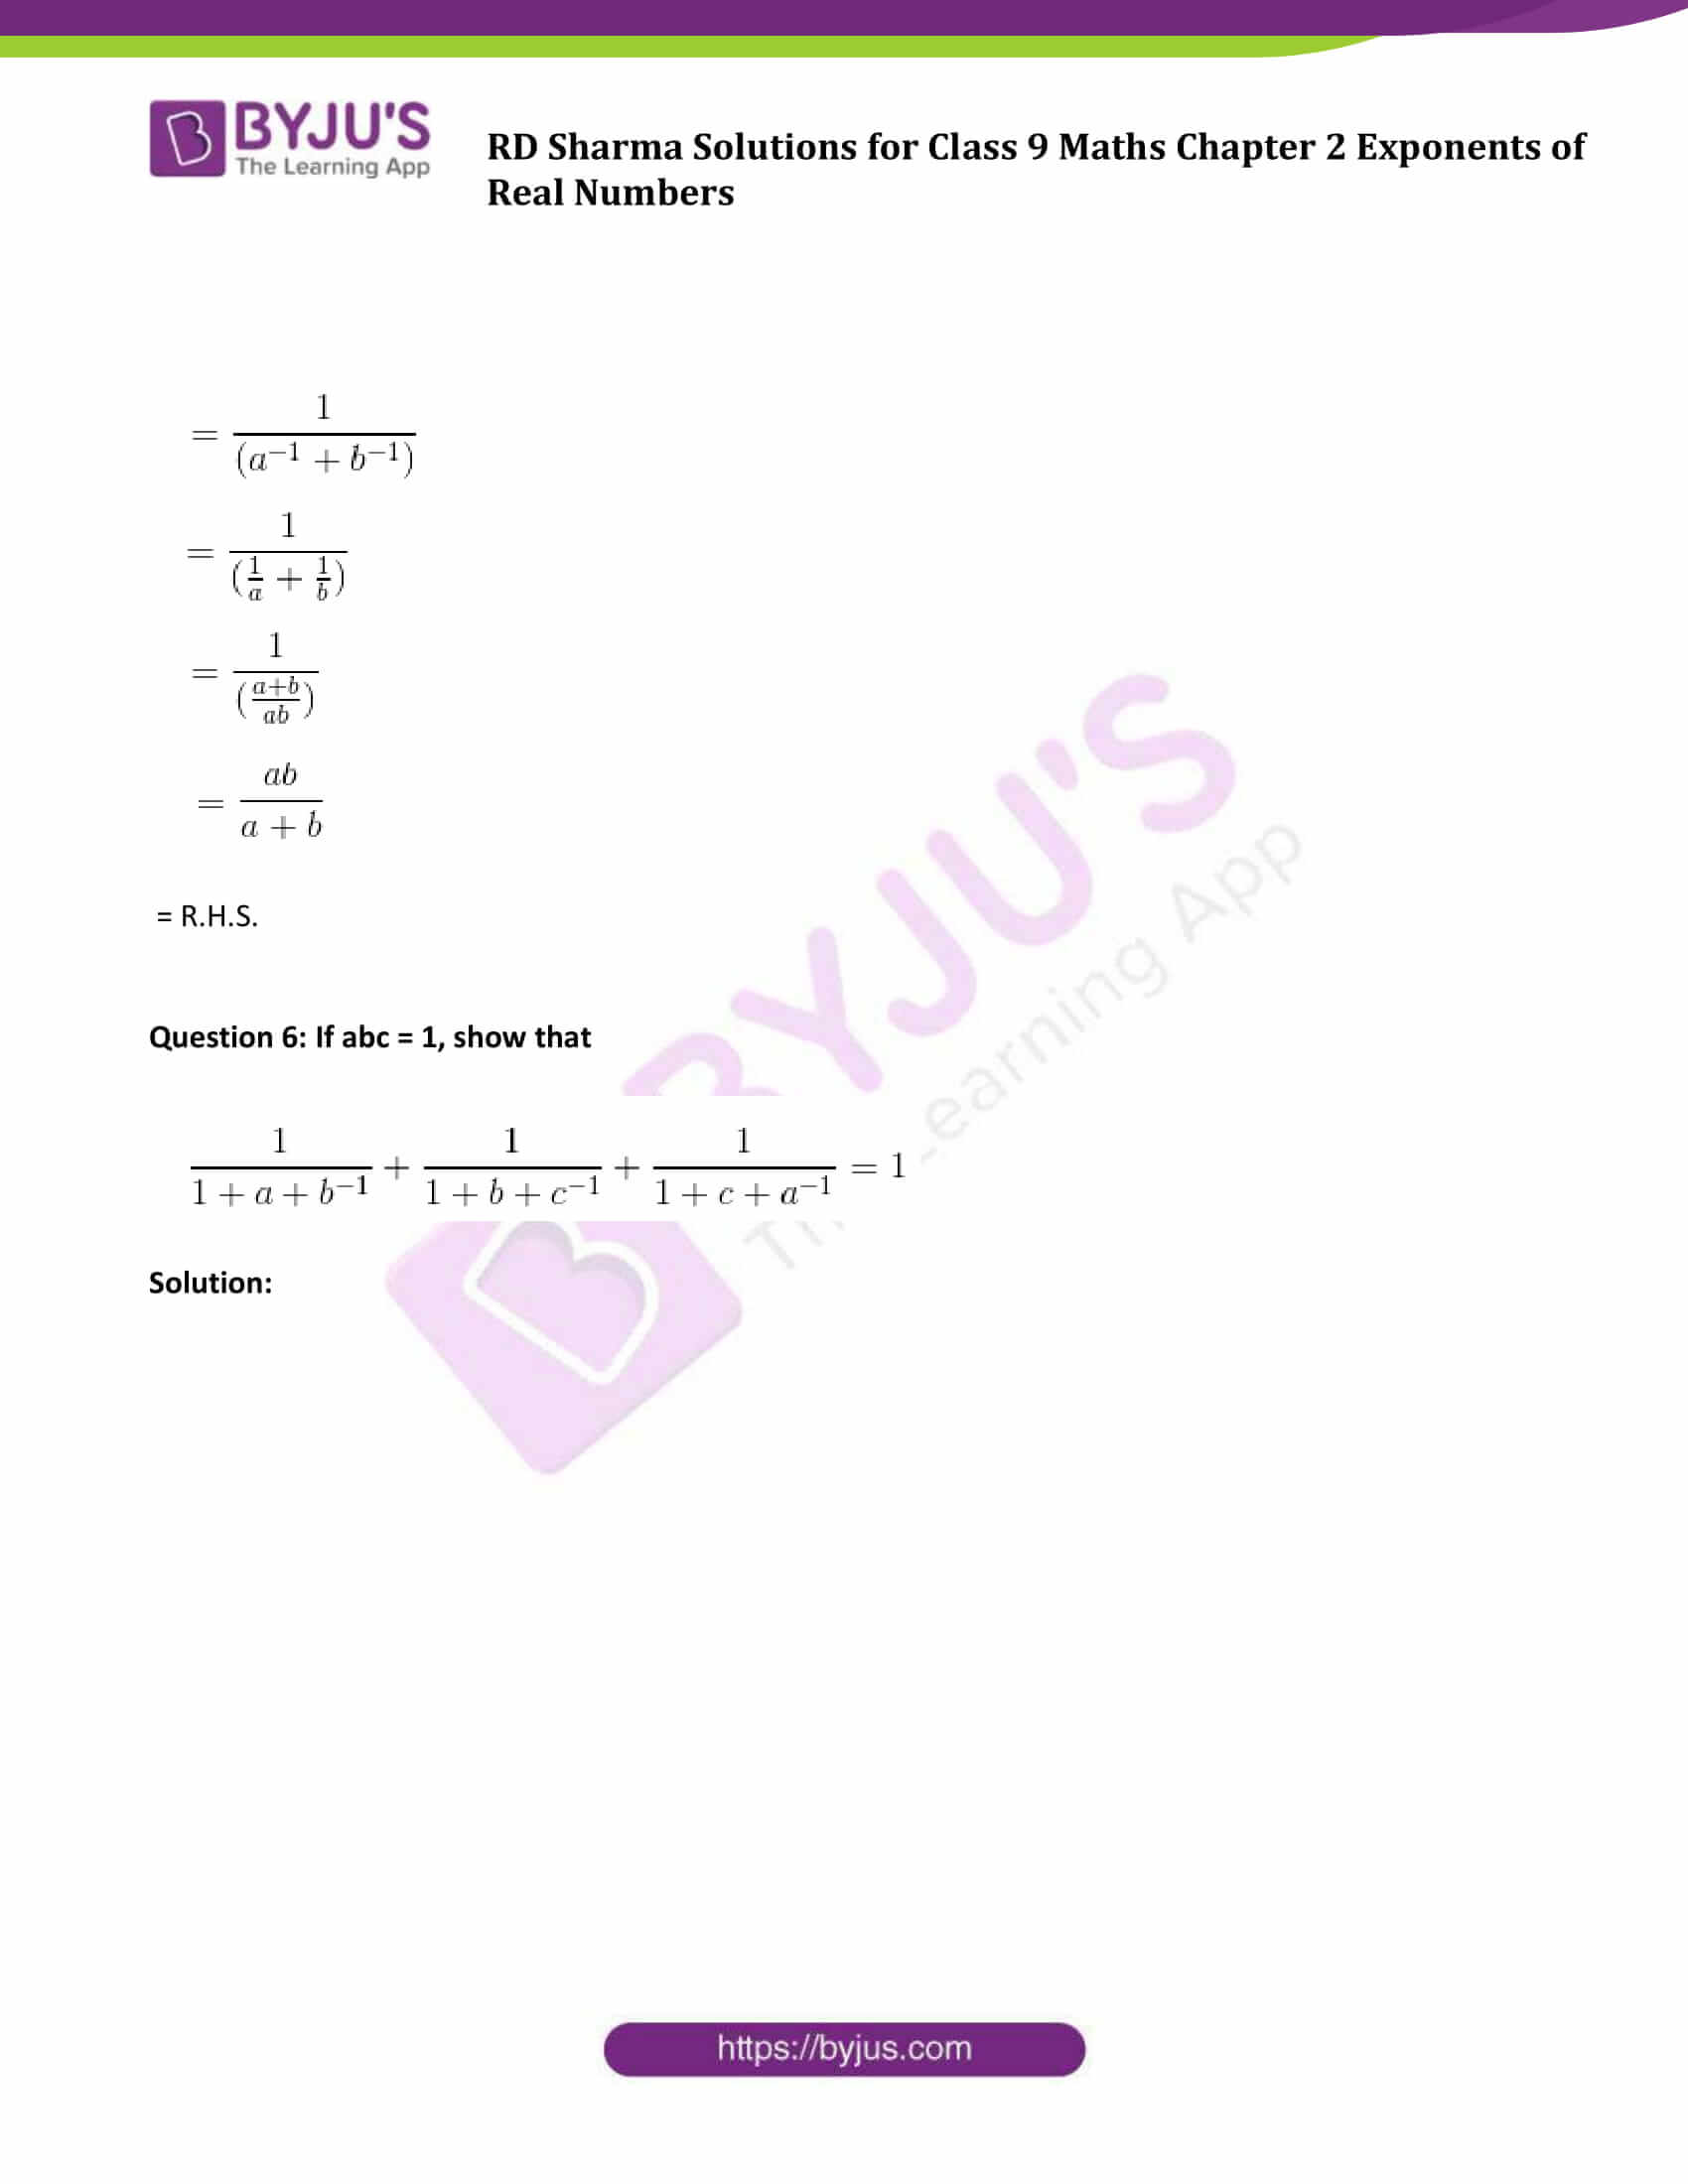 RD Sharma Solution class 9 Maths Chapter 2 Exponents of Real Numbers 07